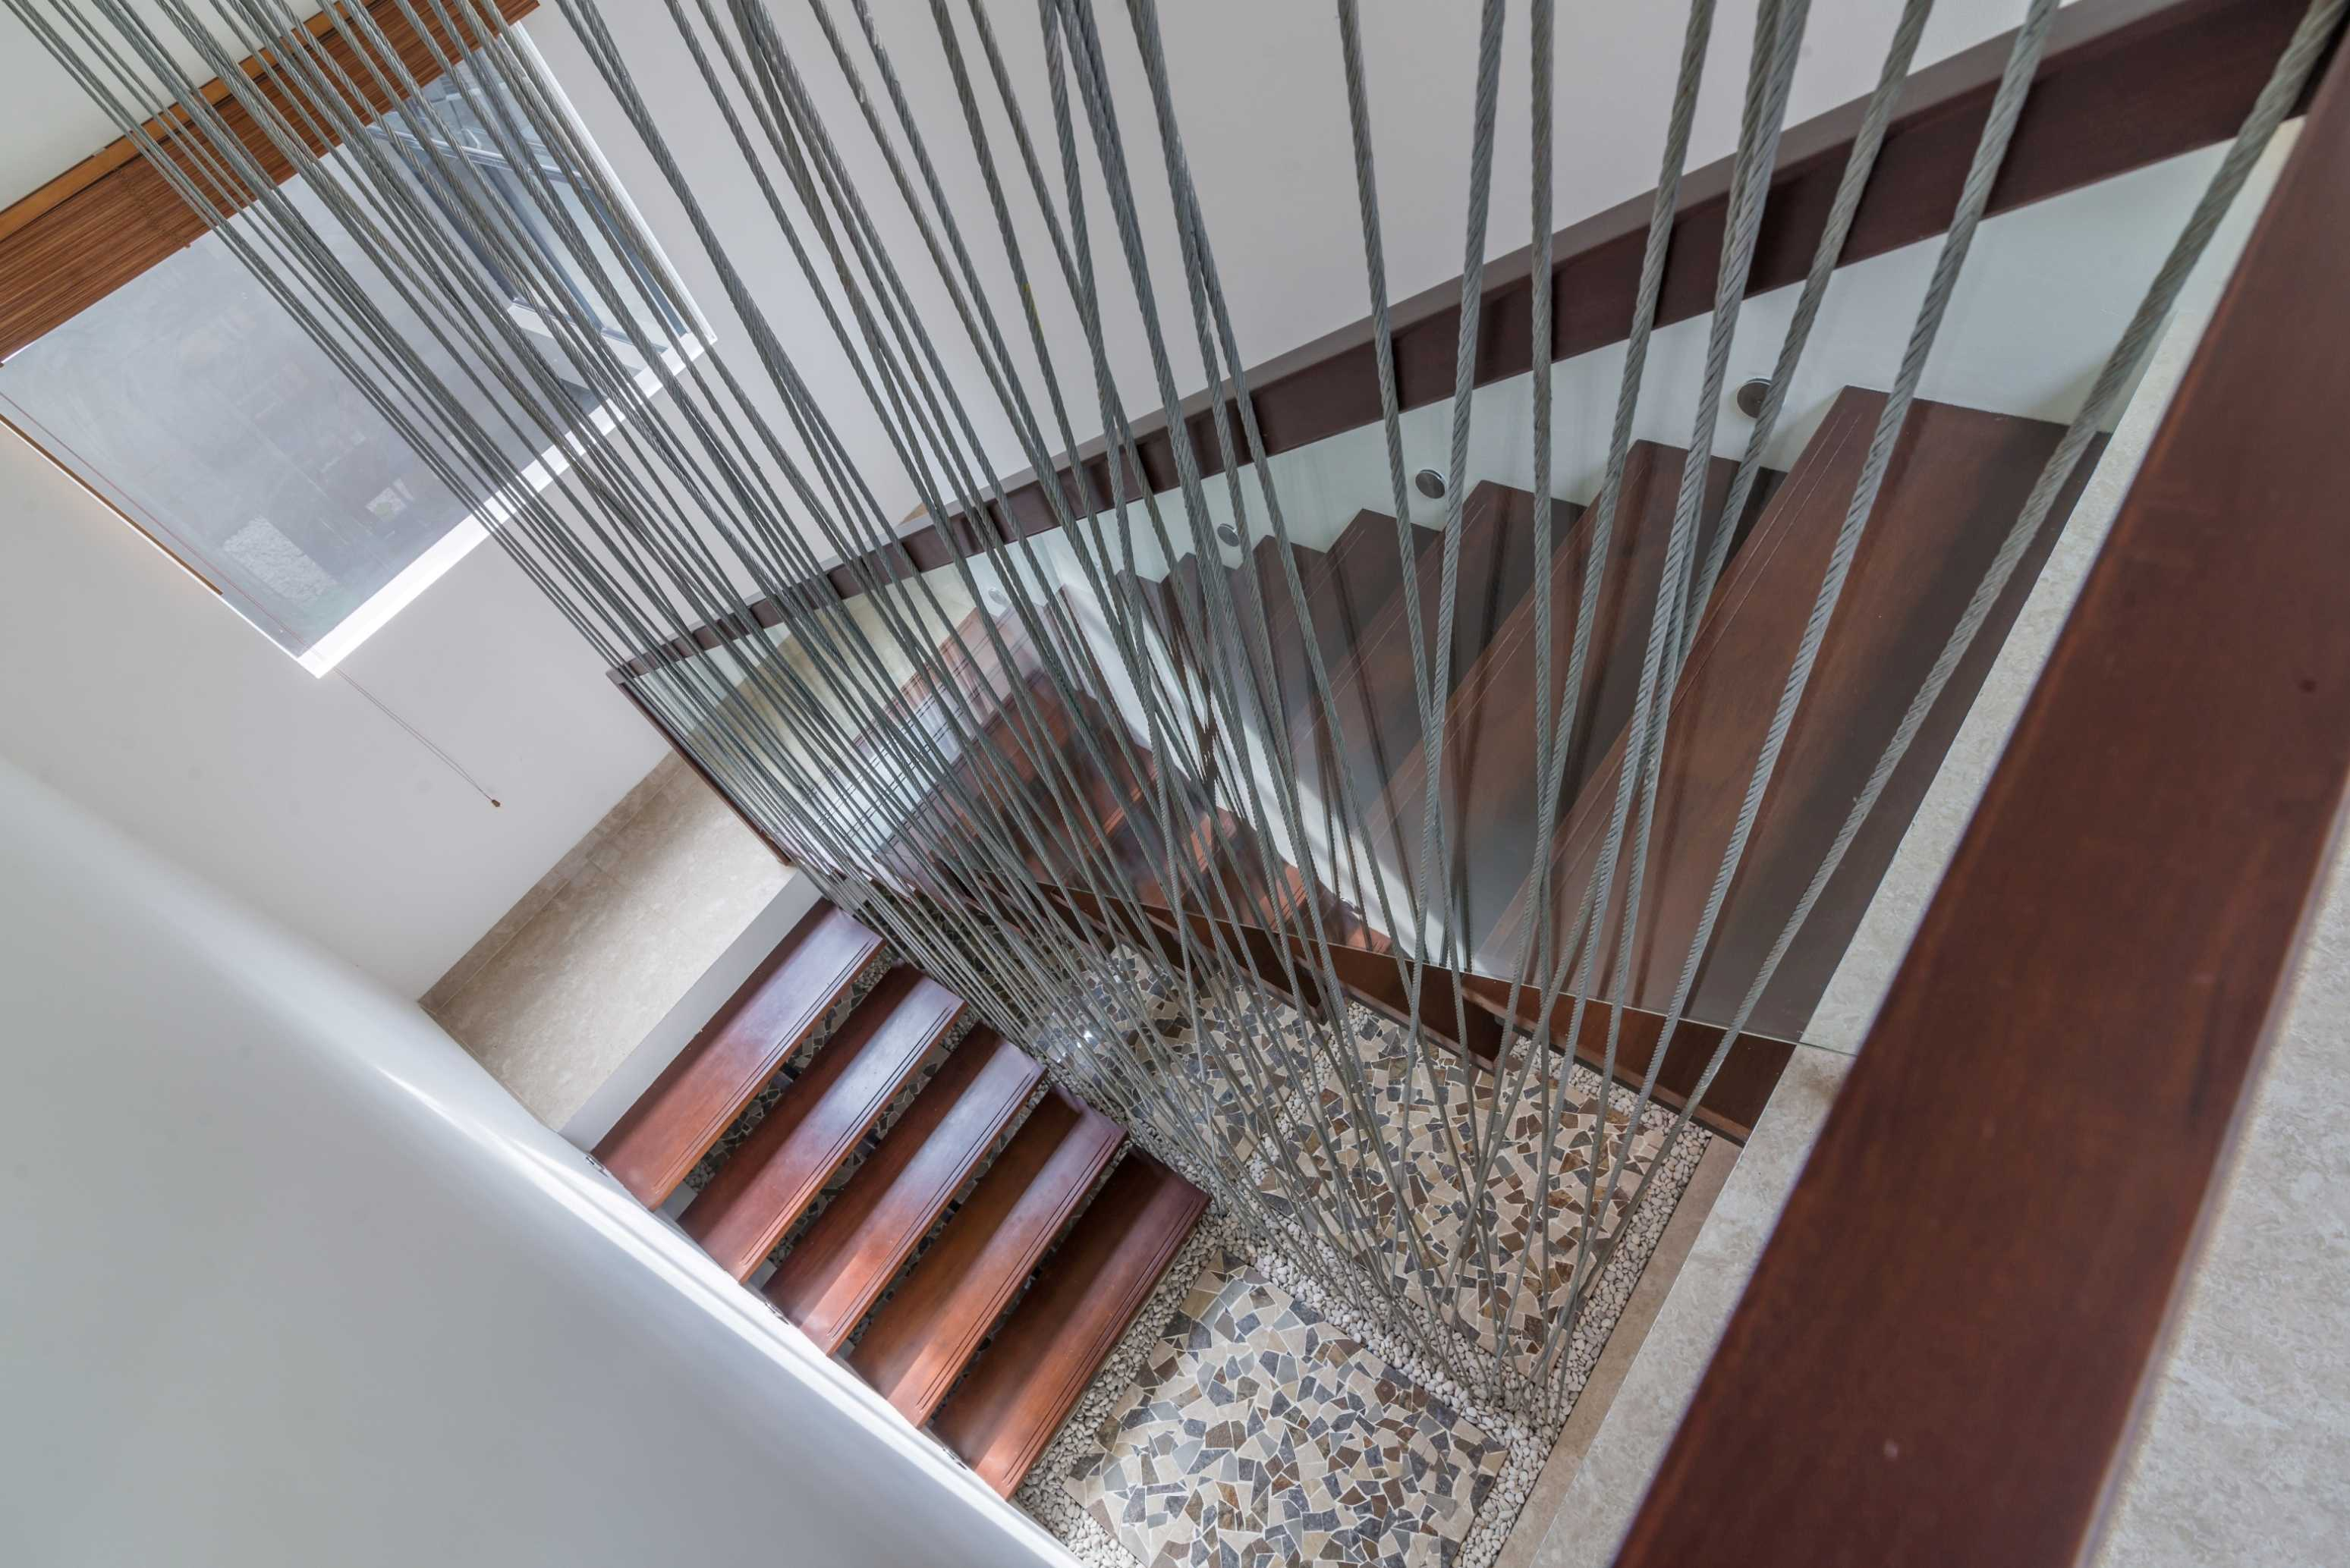 Archid Design&build Dast Residence Bandung, Kota Bandung, Jawa Barat, Indonesia Bandung, Kota Bandung, Jawa Barat, Indonesia Staircase View   49031